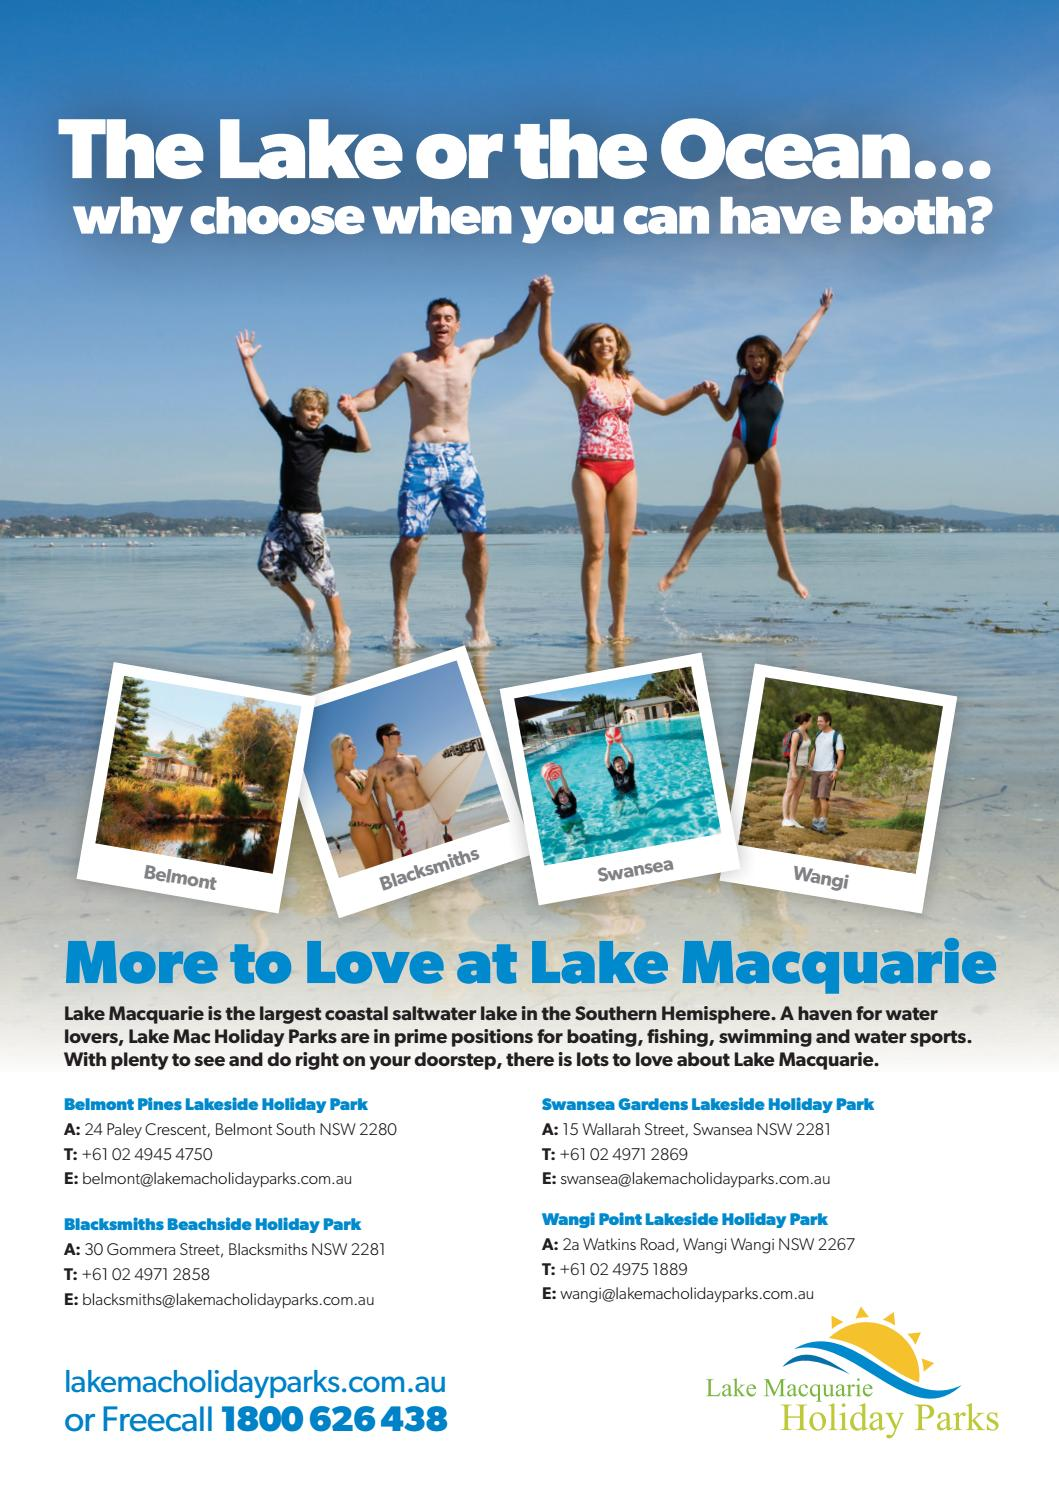 Belmont Pines Lakeside Caravan Park lake mac holiday parks brochurelake mac holiday parks